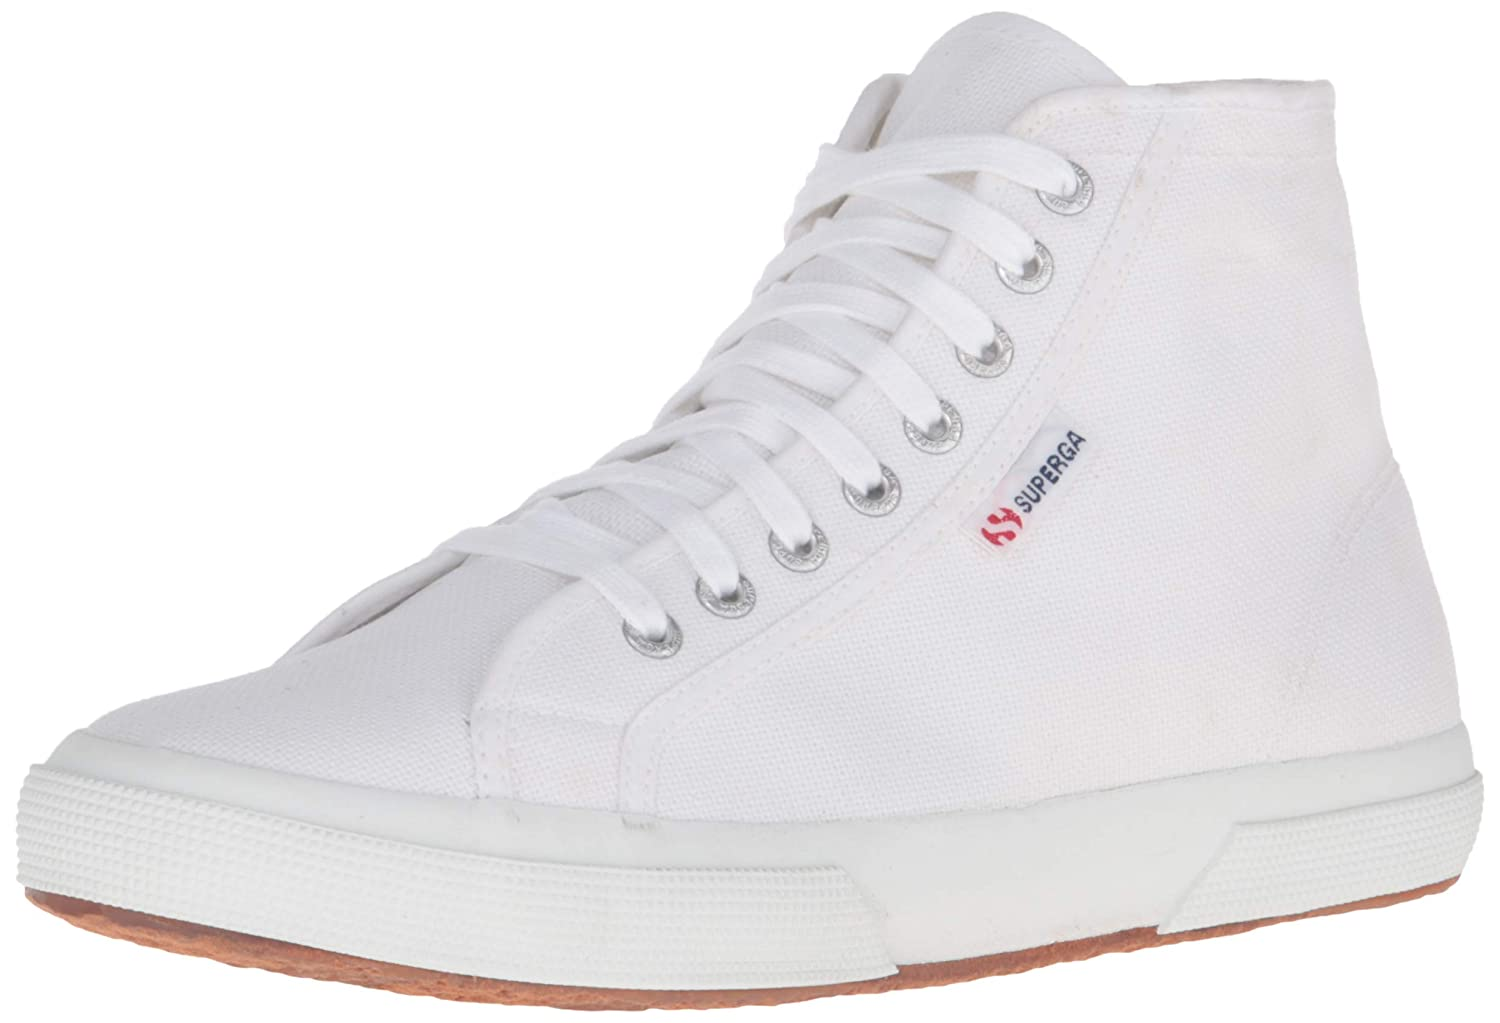 1920s Boardwalk Empire Shoes Superga Womens 2750 Cotu Classic 1 Sneaker $67.20 AT vintagedancer.com